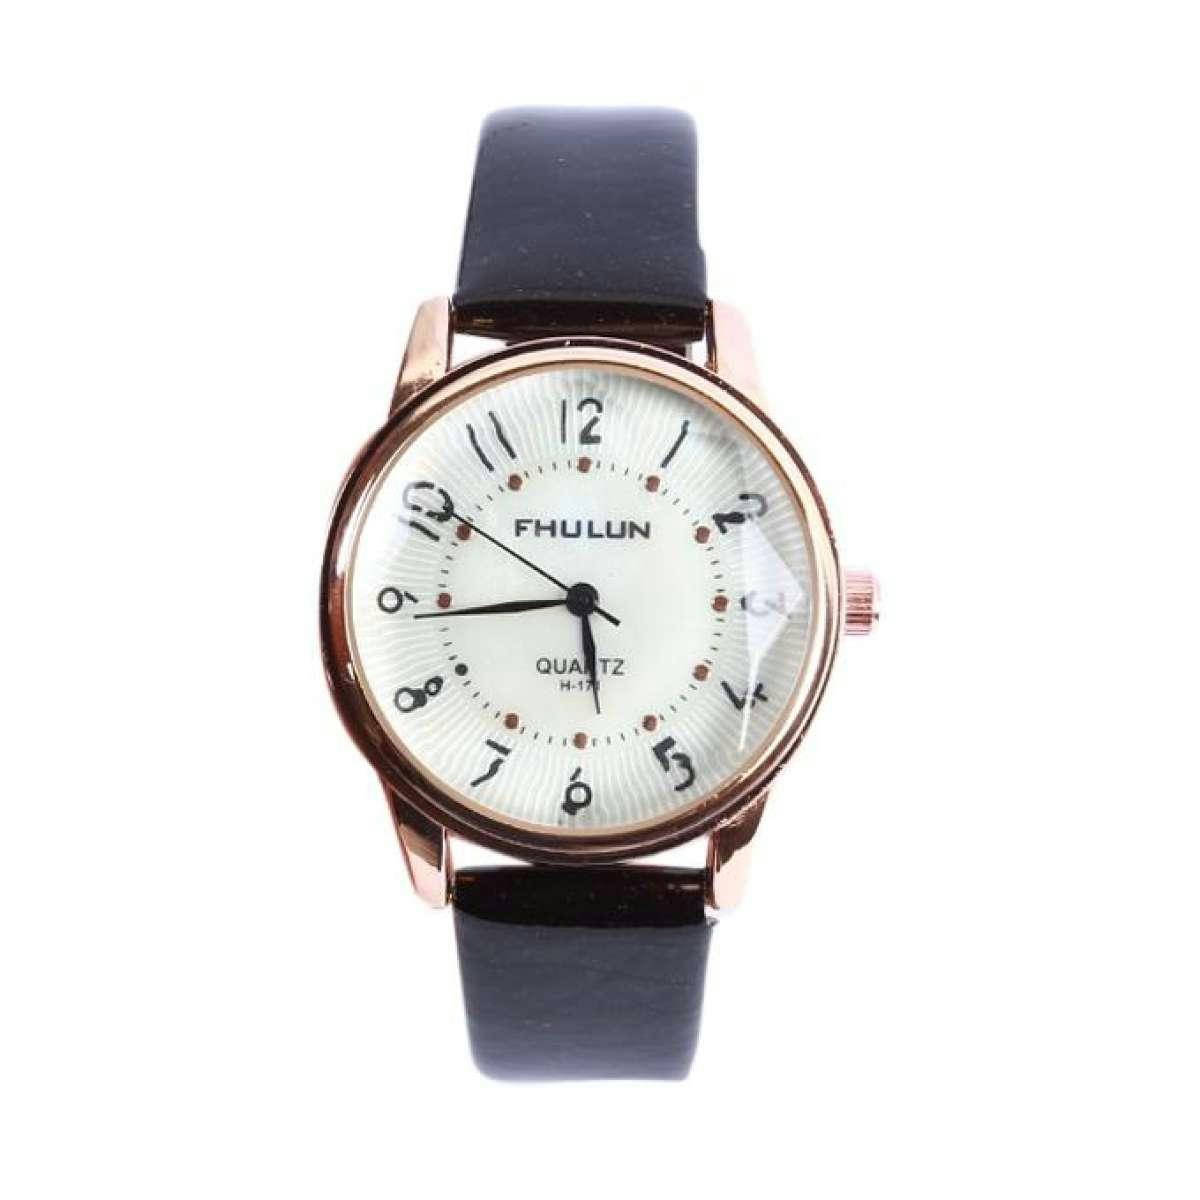 Chocolate Artificial Leather Chronograph Watch for Women - Bponi